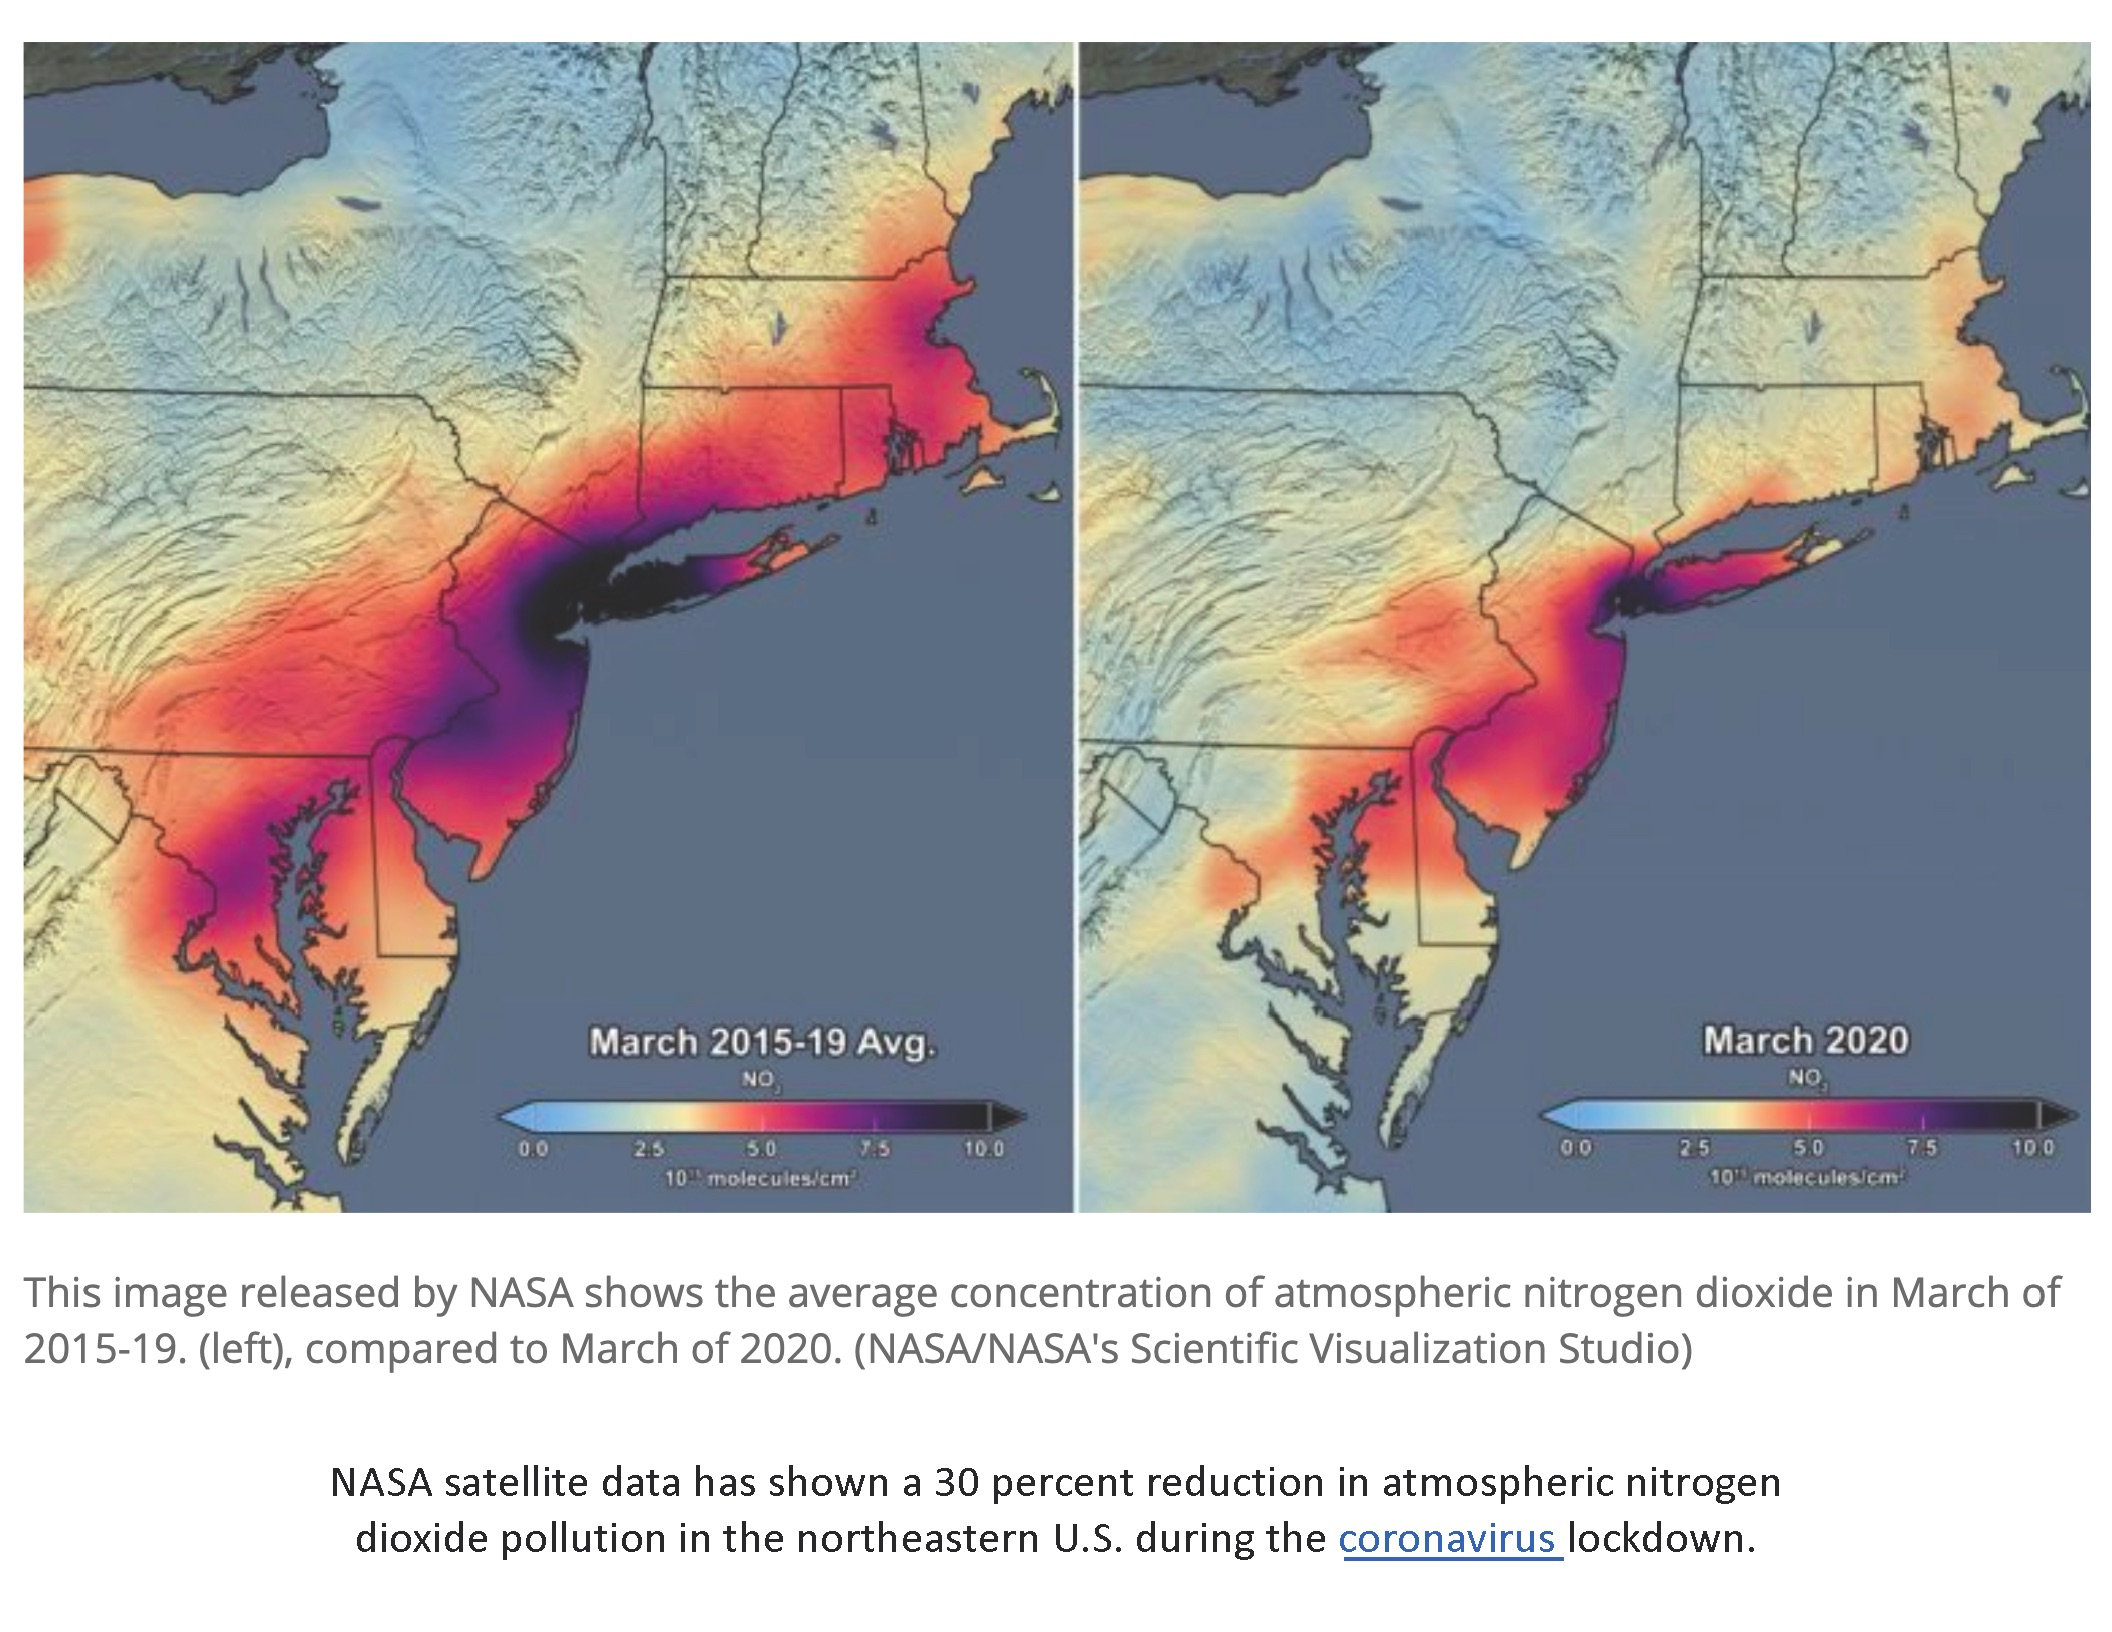 NASA air quality images for northeastern US pre and post coronavirus